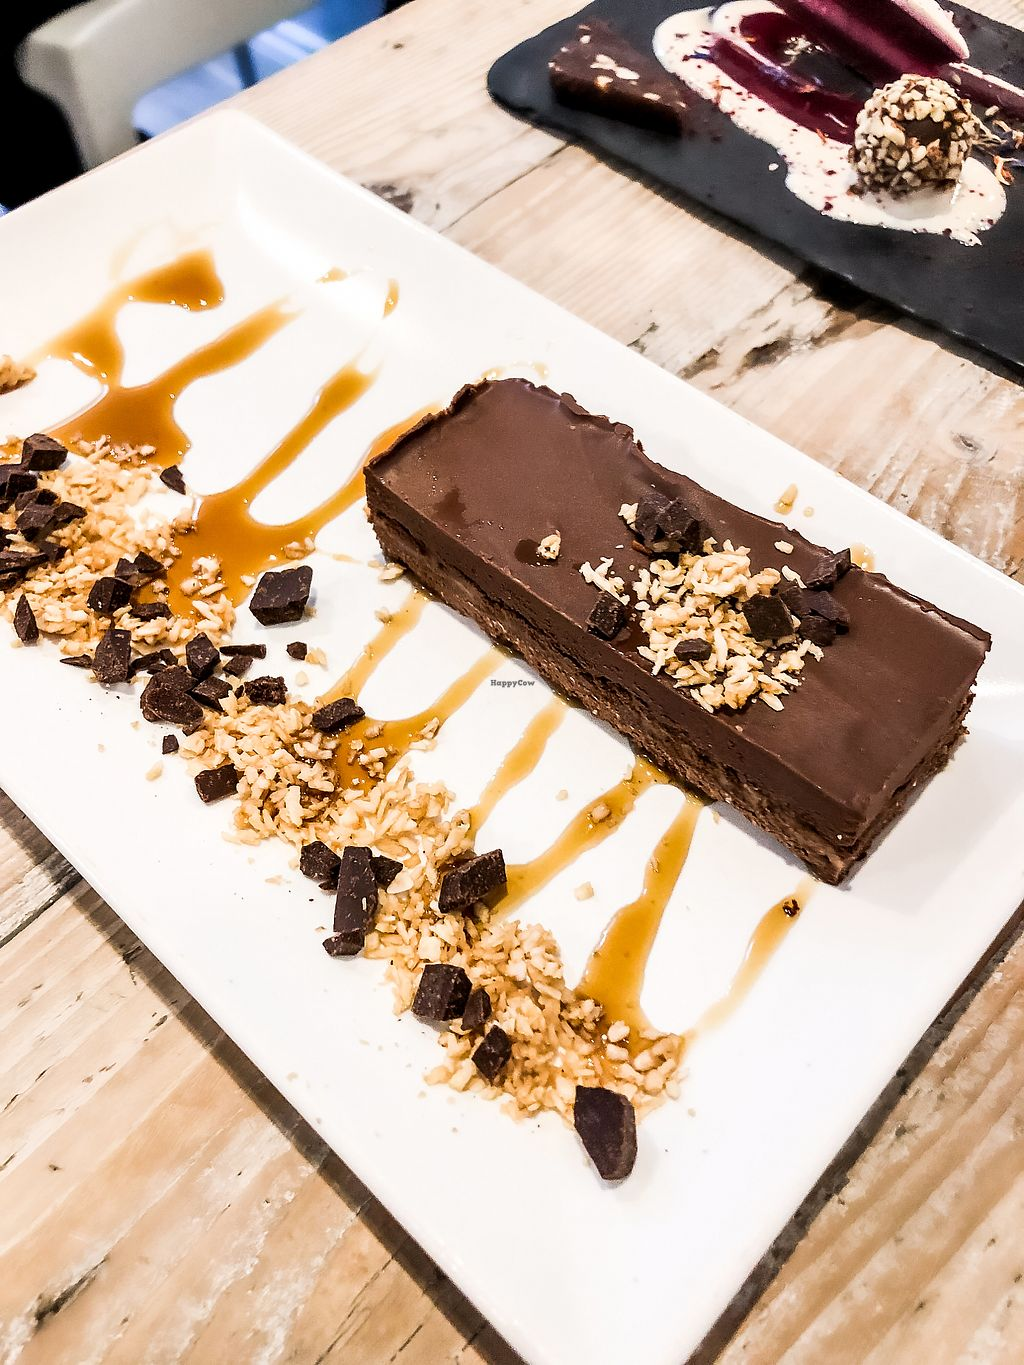 """Photo of CLOSED: Nama Artisan Raw Foods  by <a href=""""/members/profile/emiliepix"""">emiliepix</a> <br/>Have your cake and eat it too! Salted caramel chocolate cake!! <br/> March 11, 2018  - <a href='/contact/abuse/image/36686/369450'>Report</a>"""